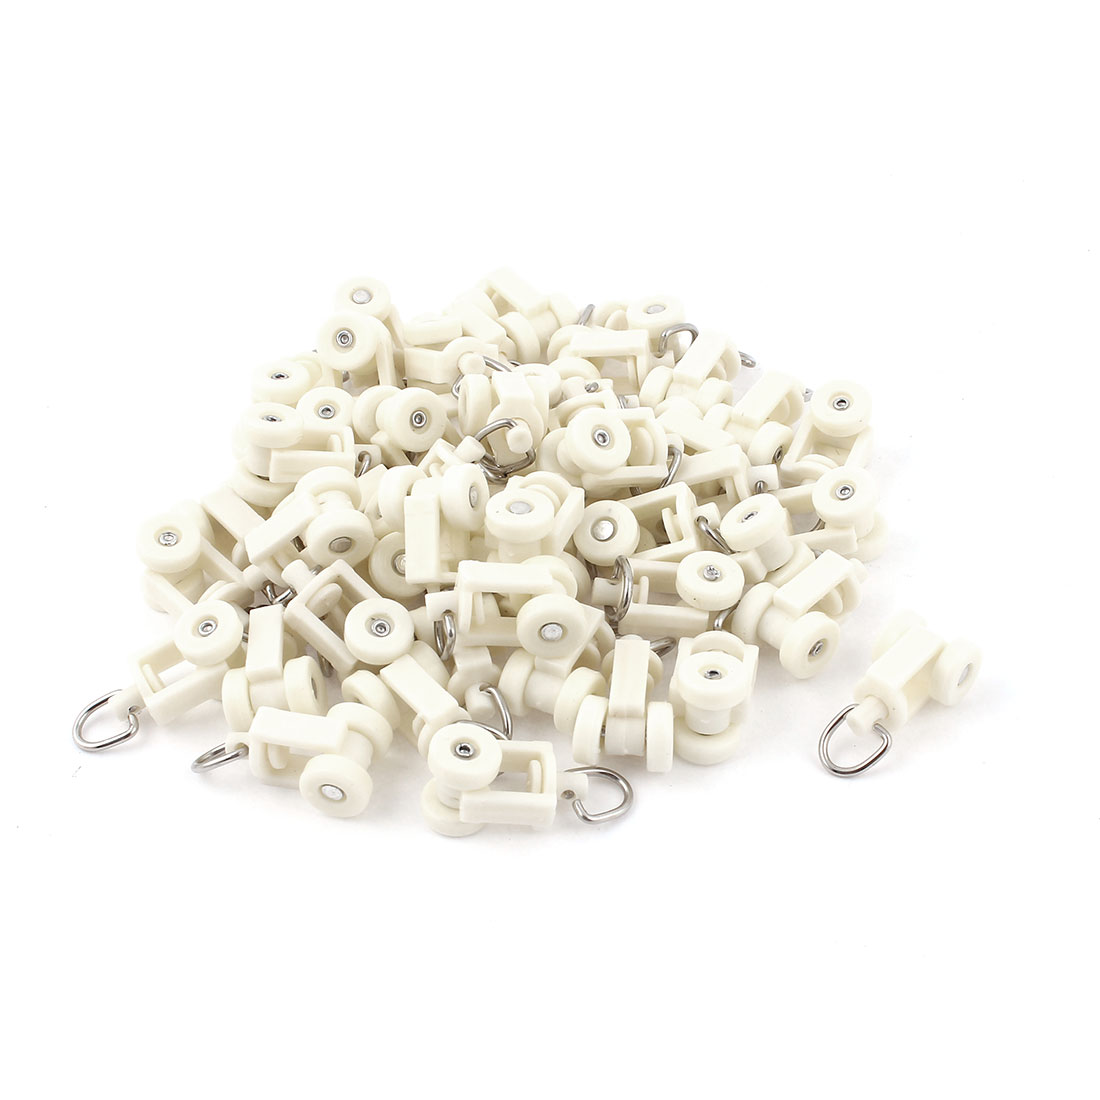 50pcs Plastic 10mm Dia Wheel Oval Ring Curtain Track Carrier Rollers Beige